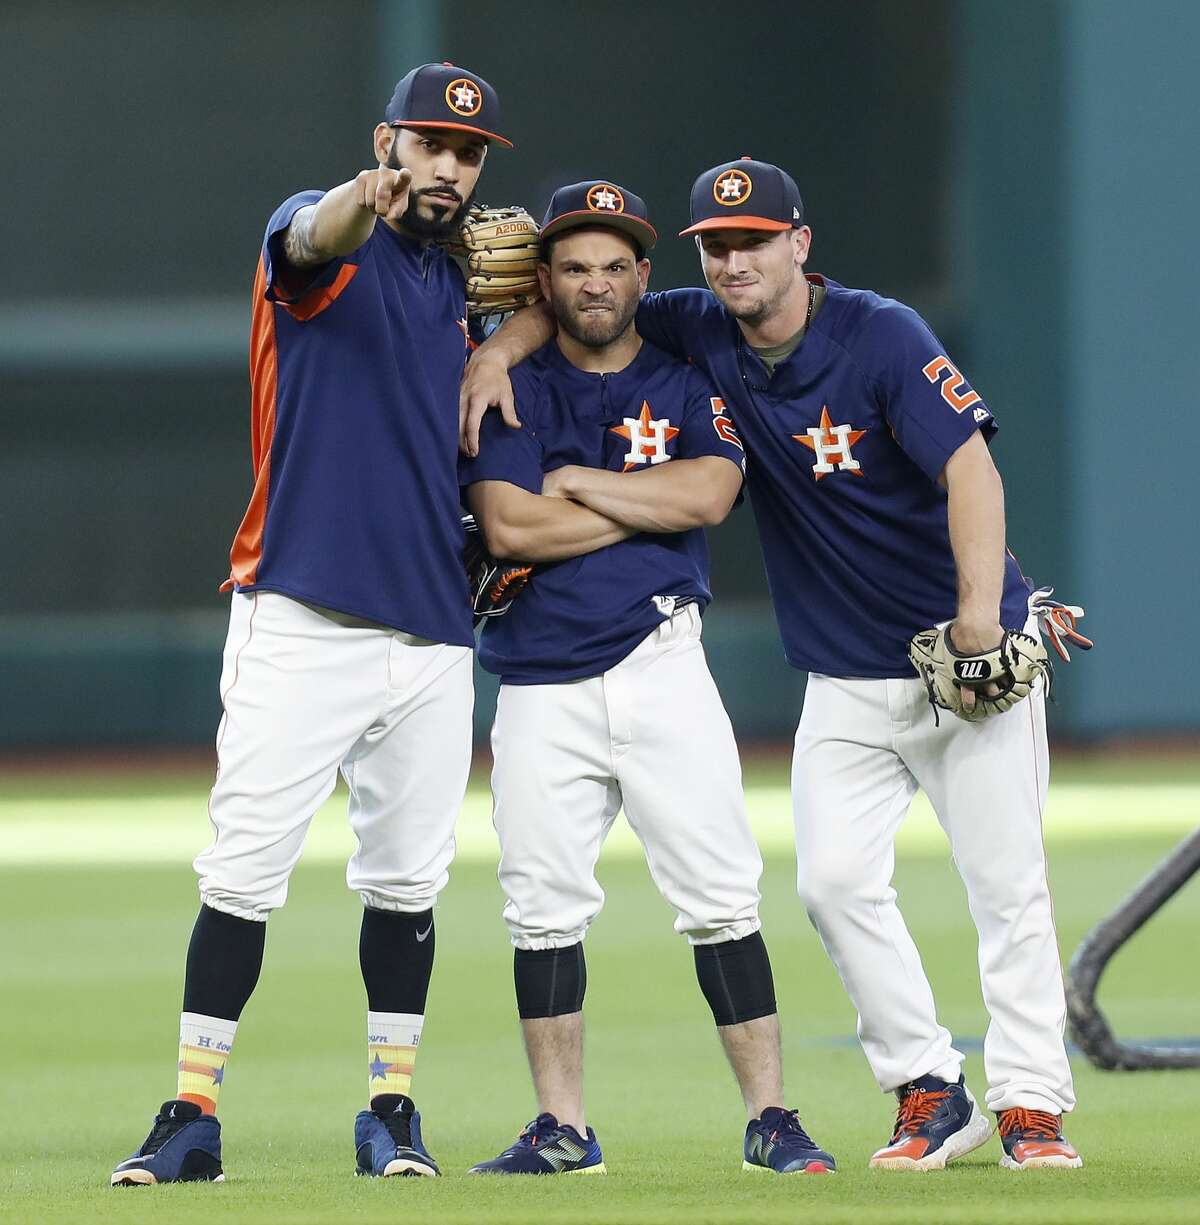 PHOTOS: The salary and contract situation for each Astros player Marwin Gonzalez, Jose Altuve and Alex Bregman are nowhere near the highest-paid Astros, although that surely will change for Altuve in the next year or two. Browse through the photos above for a look at the Astros' salaries and their contract situations.